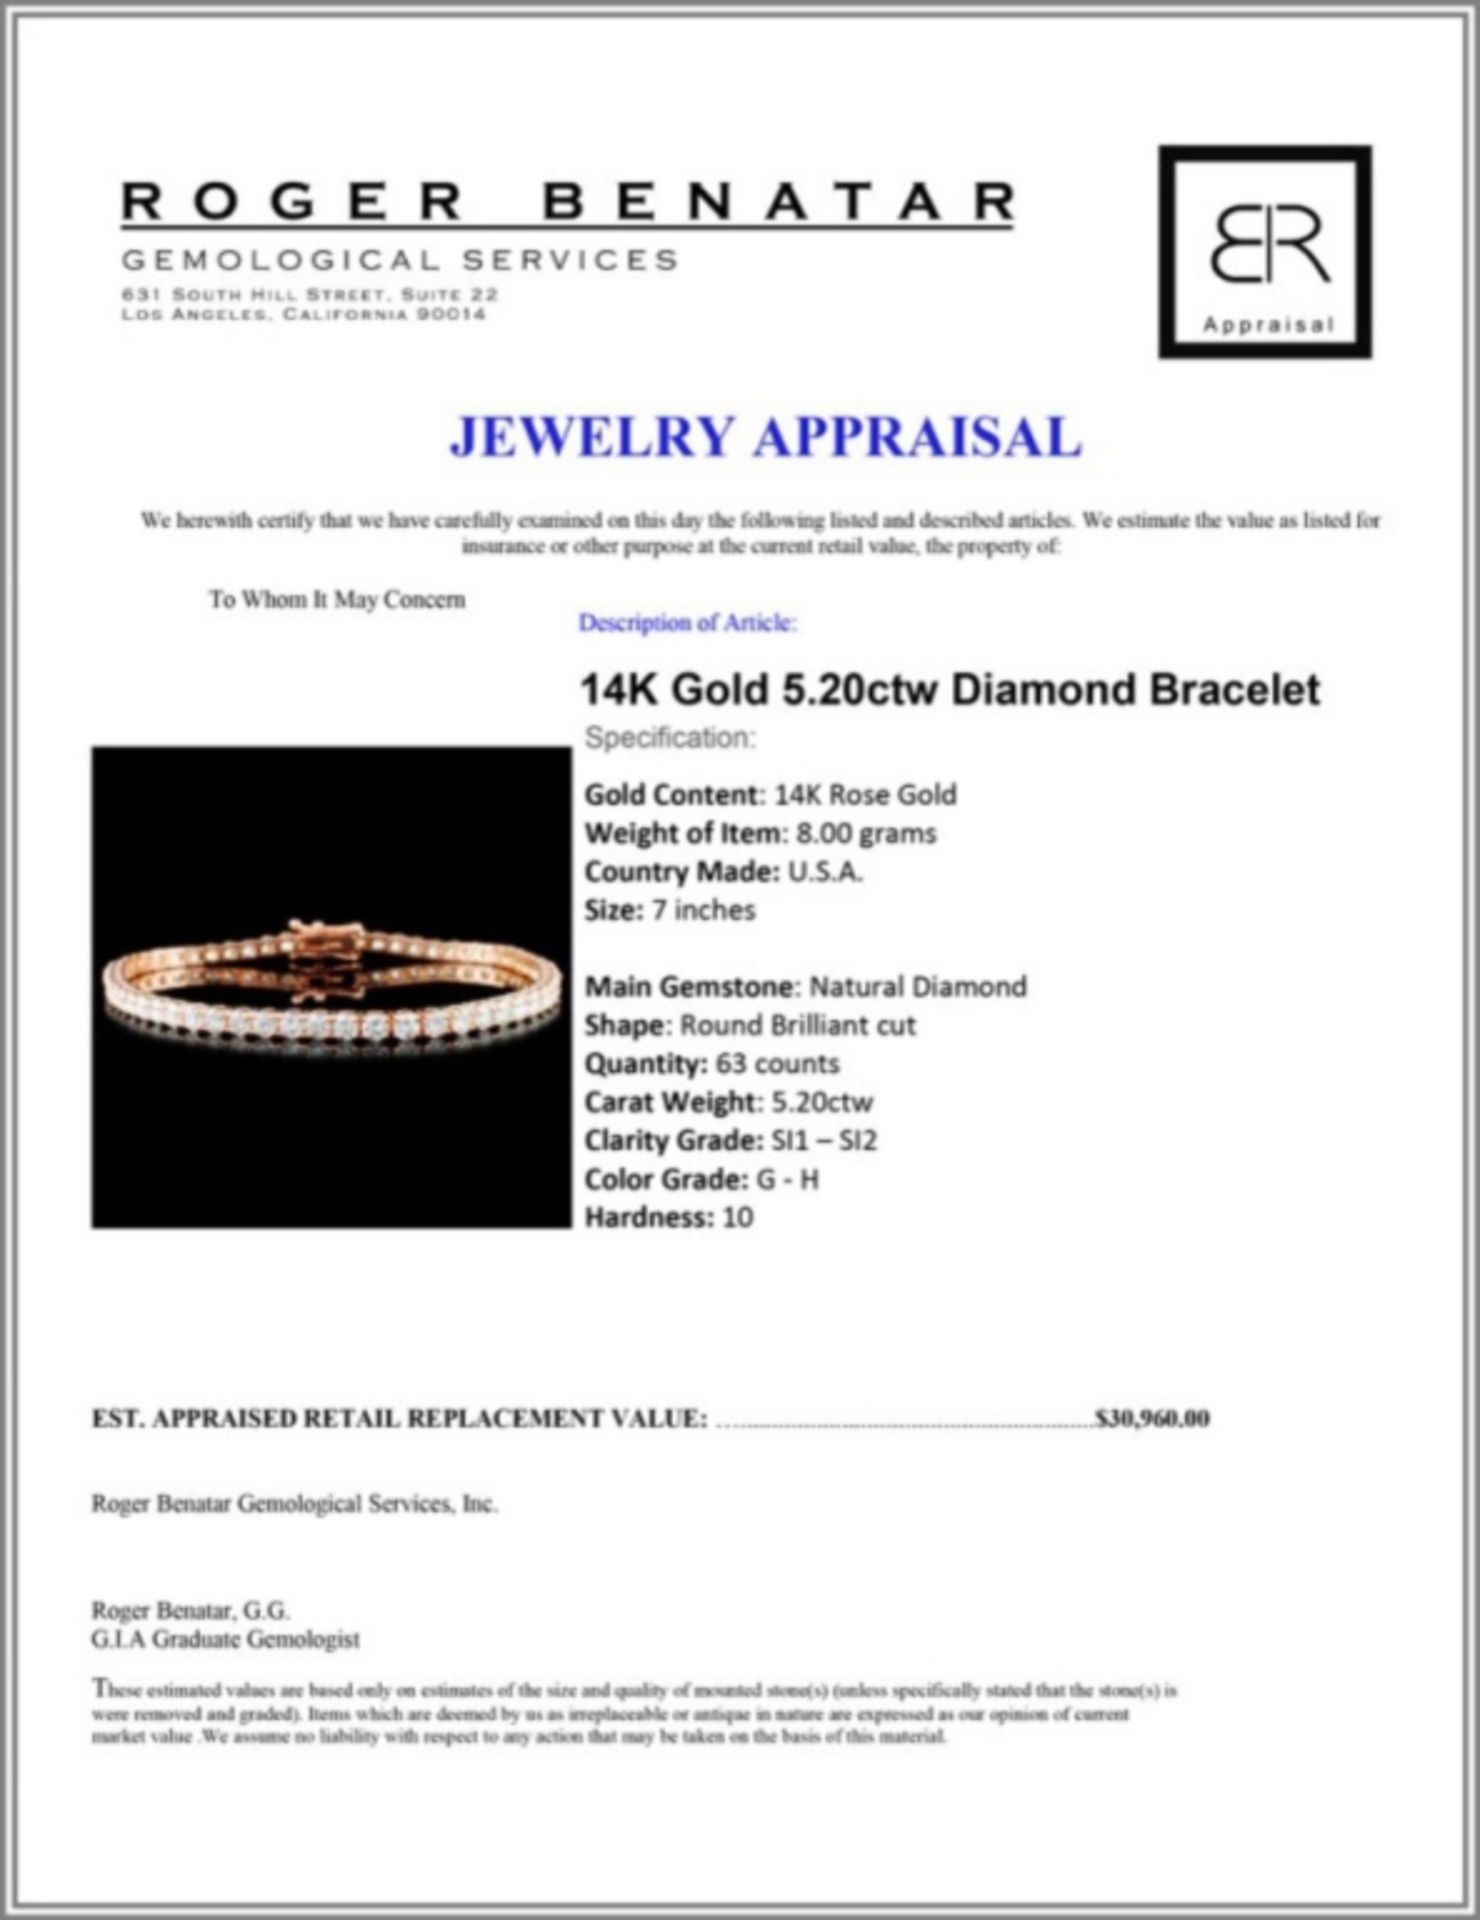 14K Gold 5.20ctw Diamond Bracelet - Image 3 of 3